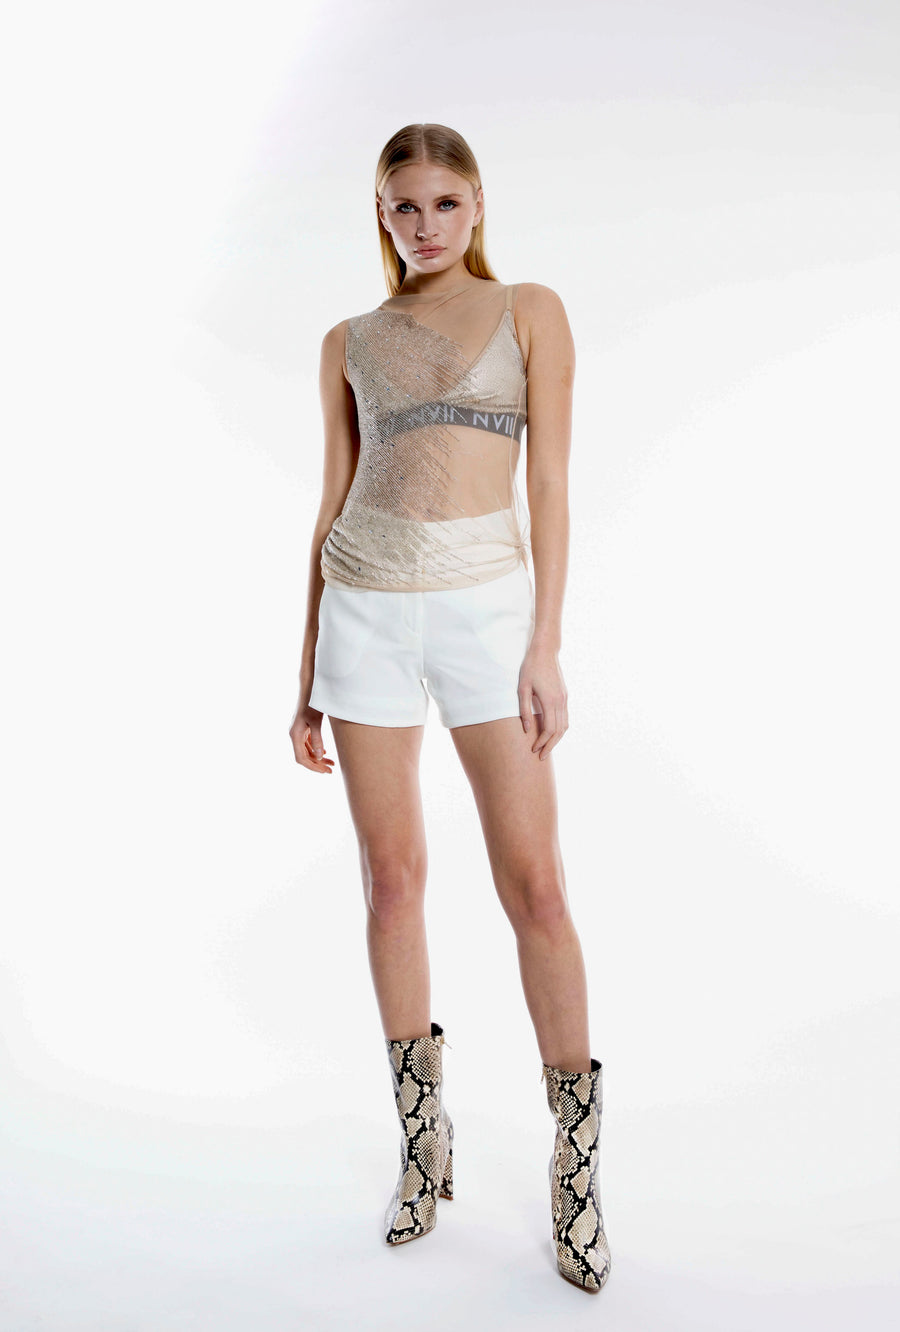 NOMAD VII - MATEA BEADED TOP - NOMAD VII X ANNE BOWEN